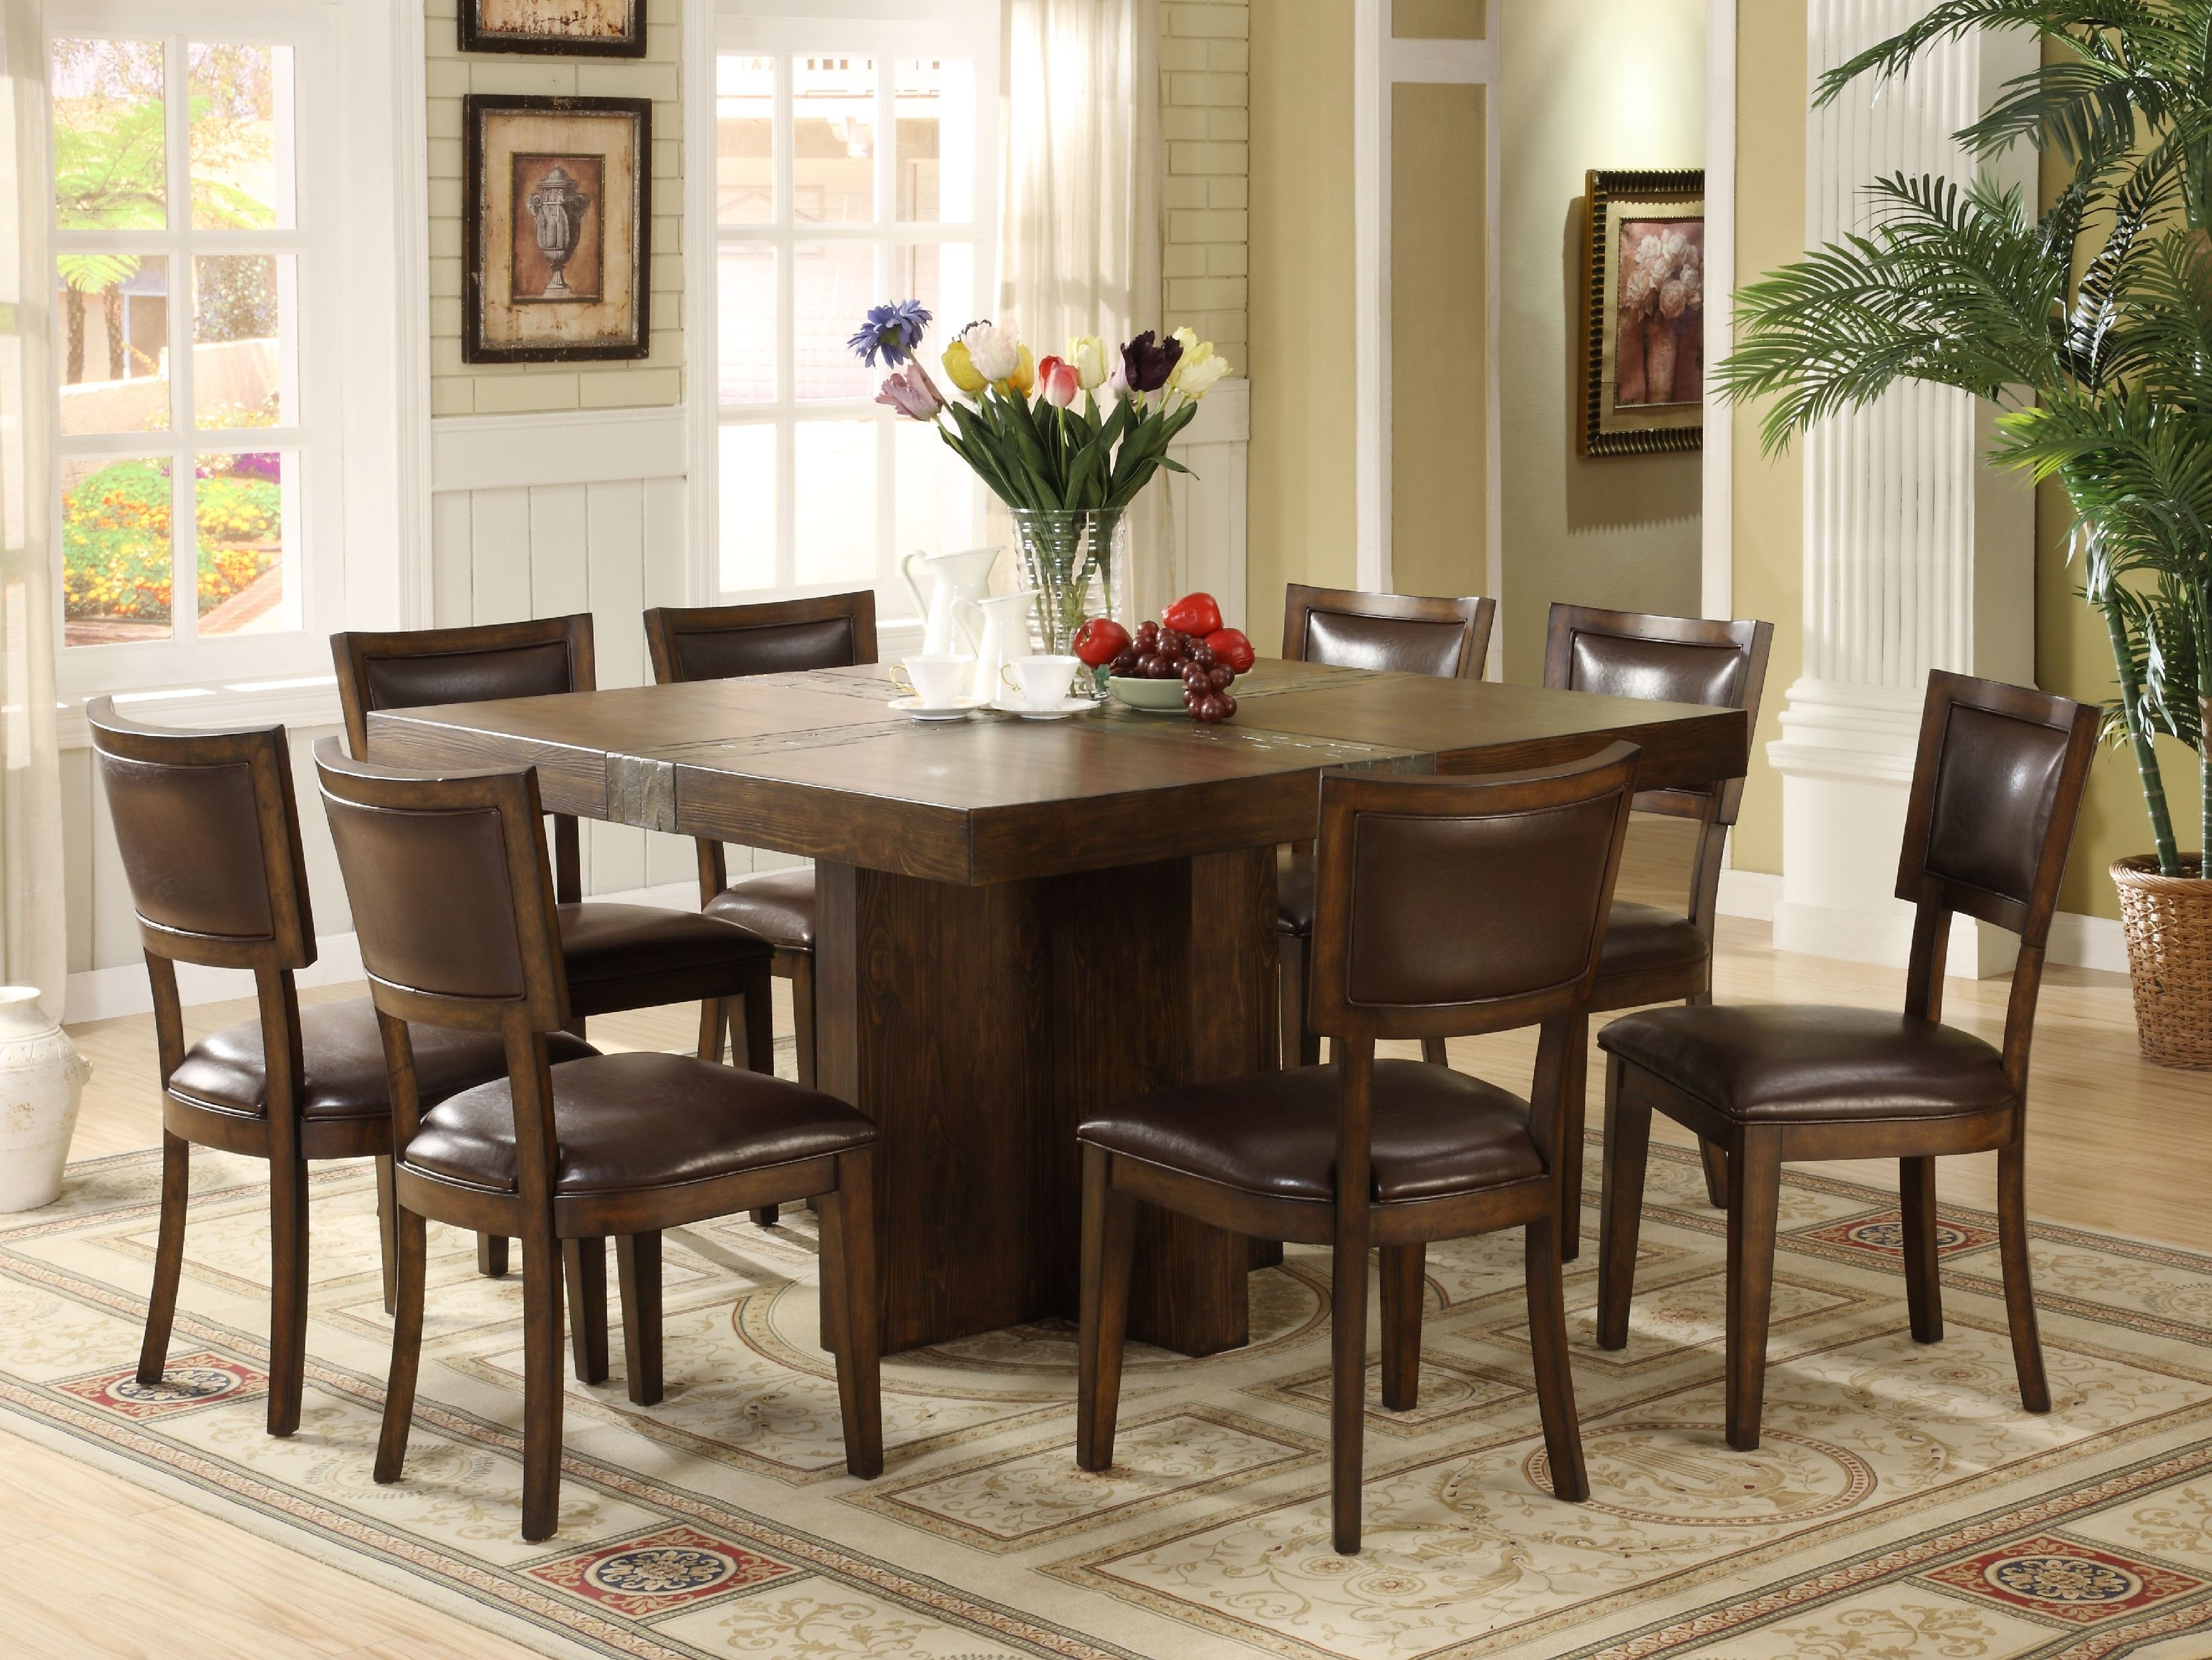 Dining Tables Seats 8 In Newest 8 Seater Square Table And Chairs Charming Ideas Square Dining Table (Gallery 8 of 25)